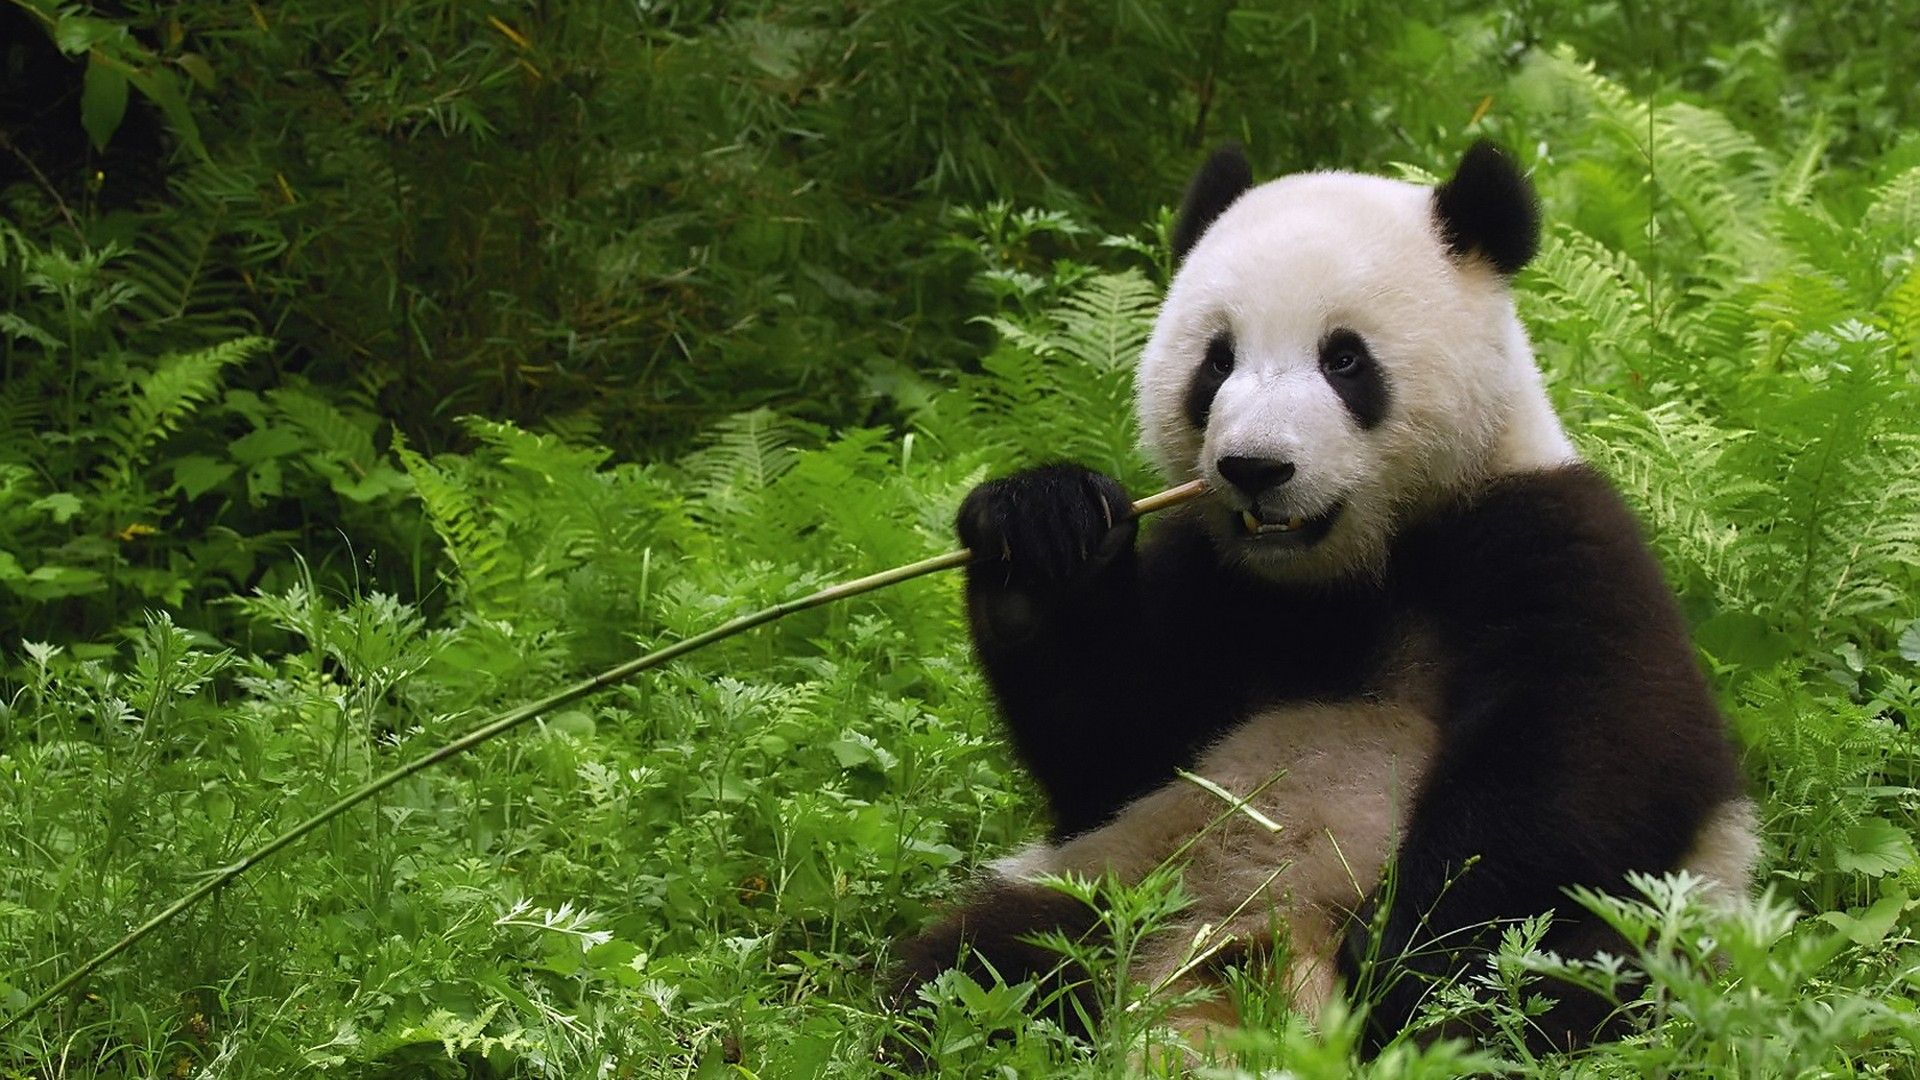 Nature Animals Wallpapers Nature Animals Hd Wallpapers Chainimage Panda Bear Panda Wallpapers Panda